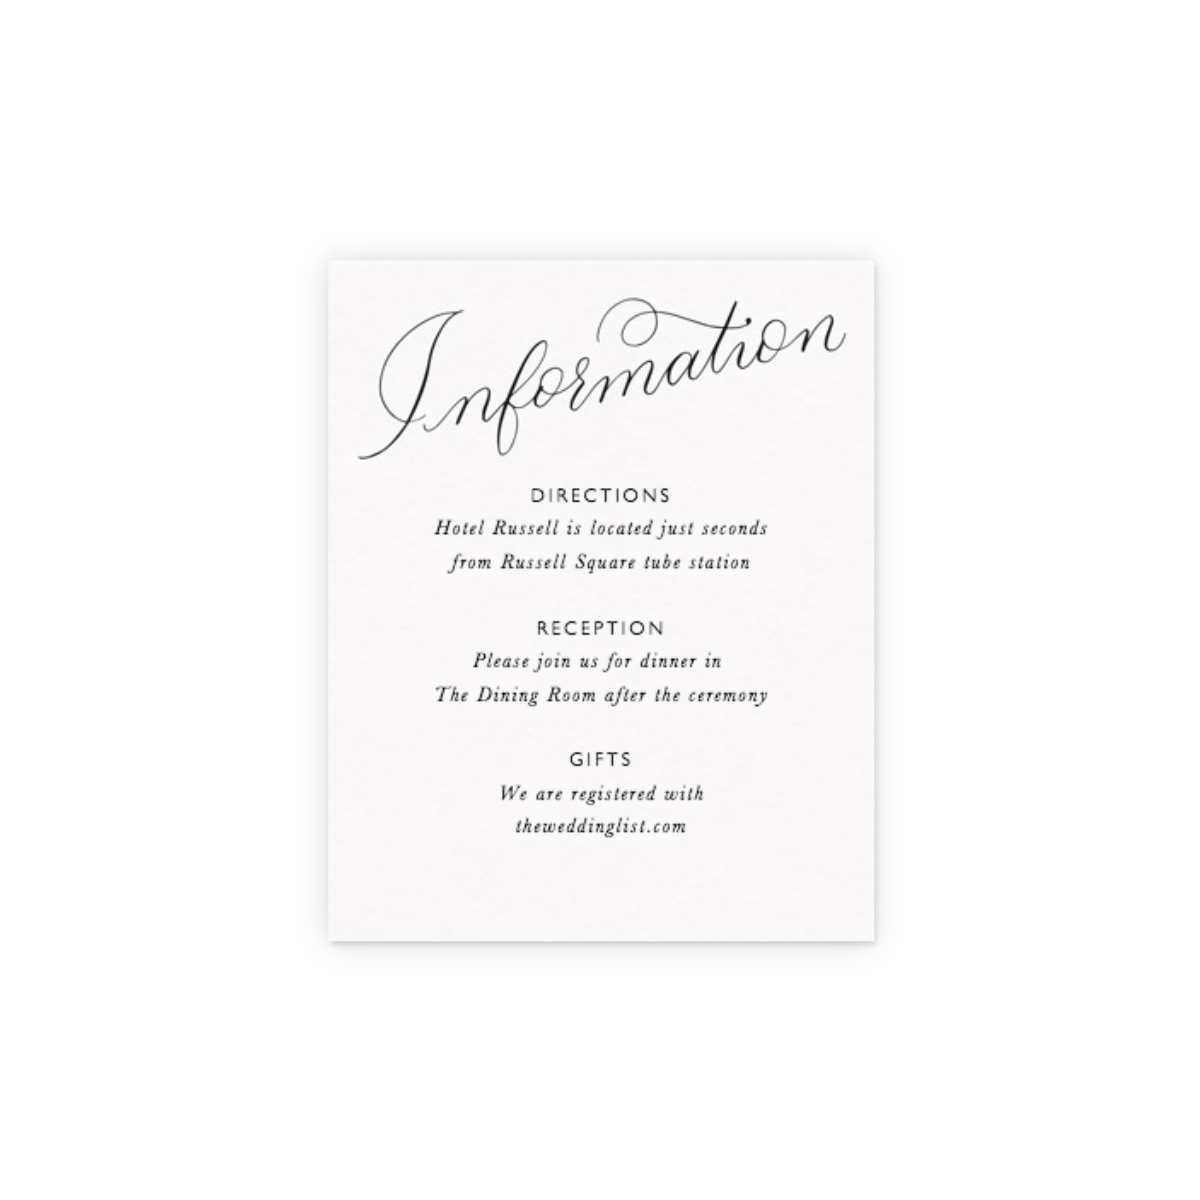 Https%3a%2f%2fwww.papier.com%2fproduct image%2f8899%2f9%2fthe marriage of calligraphy 2227 info card 1532444222.png?ixlib=rb 1.1